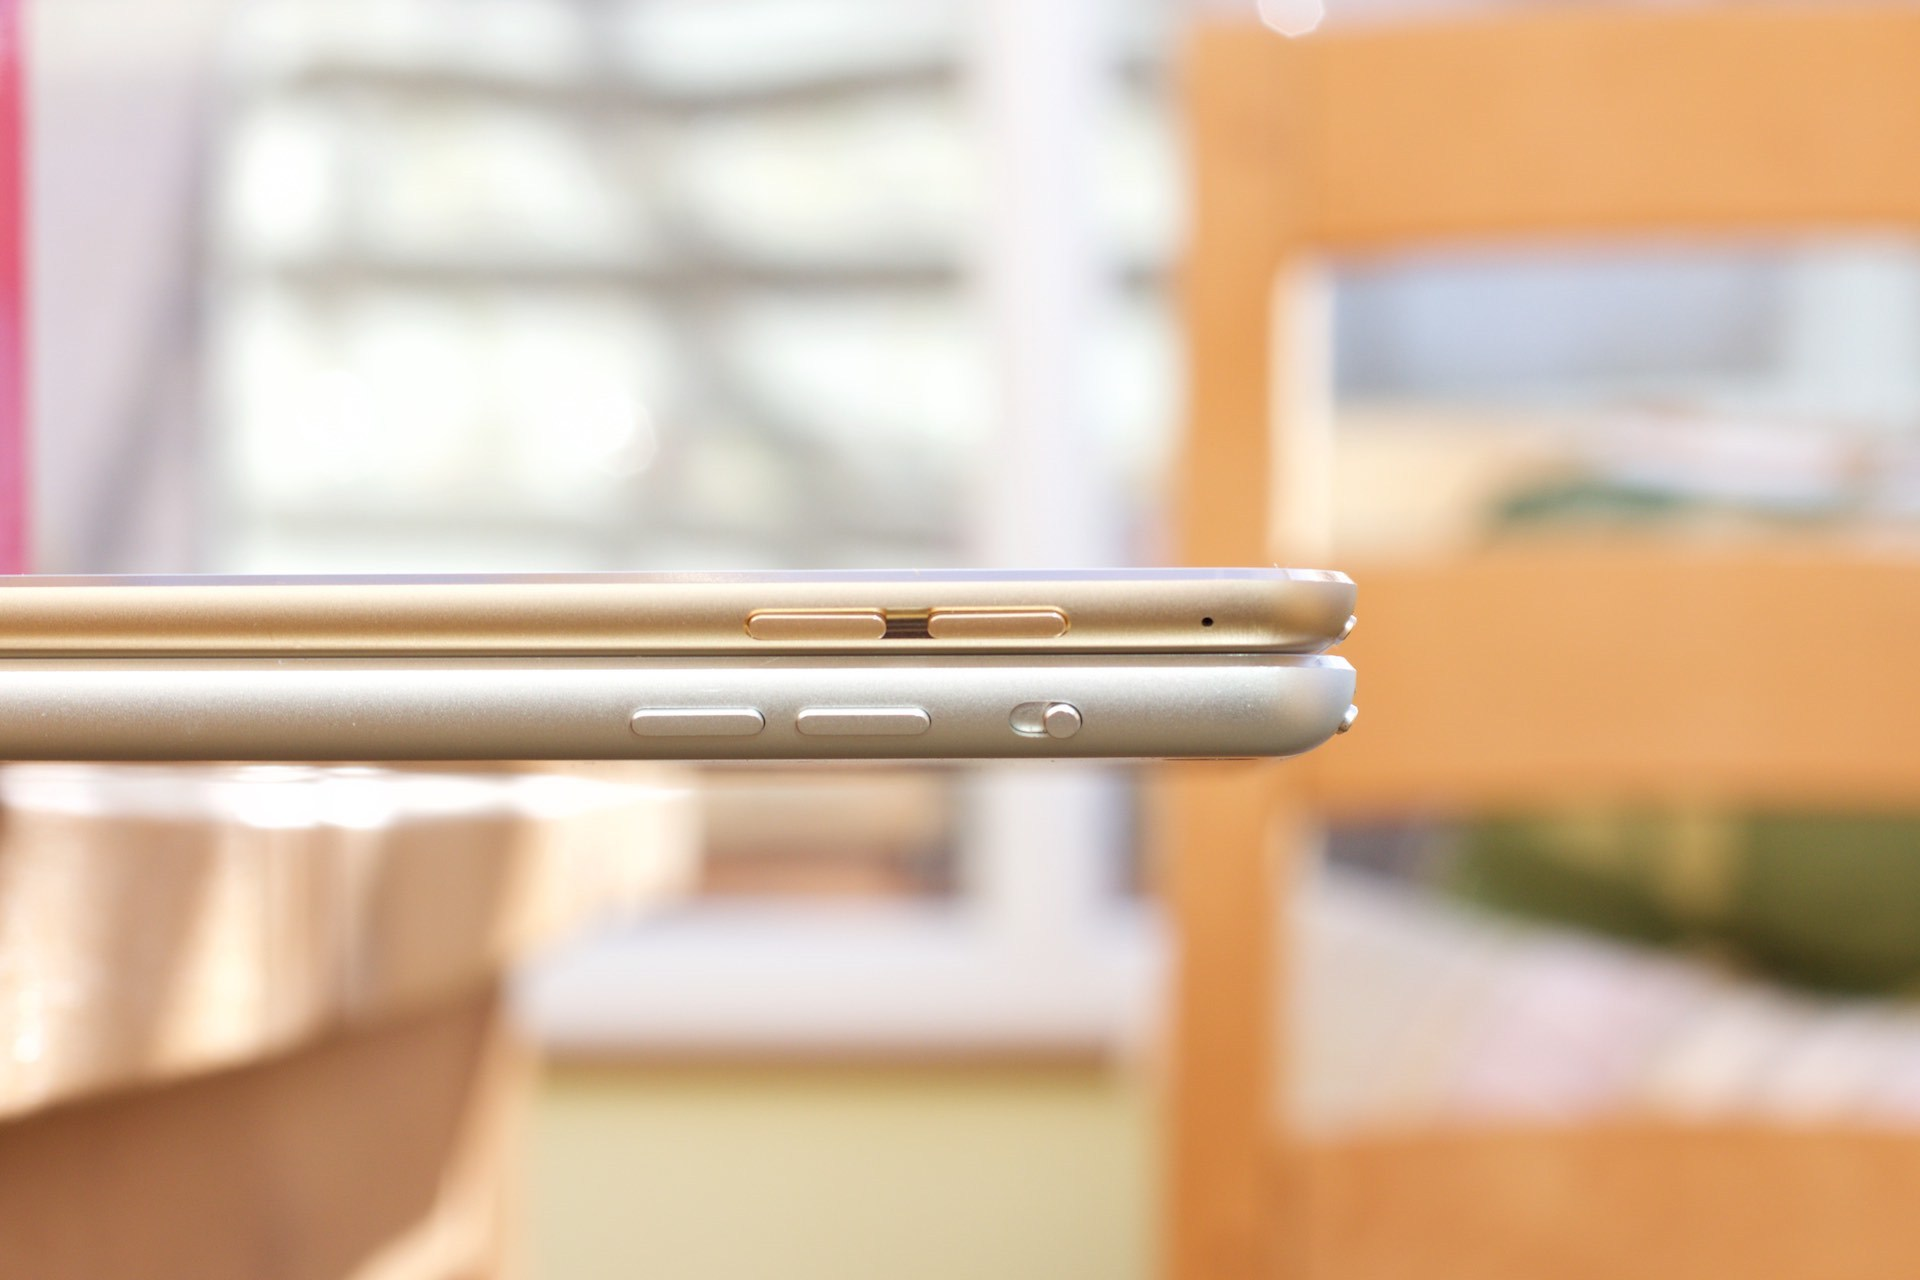 iPad Air 3 will most likely appear at the event in March